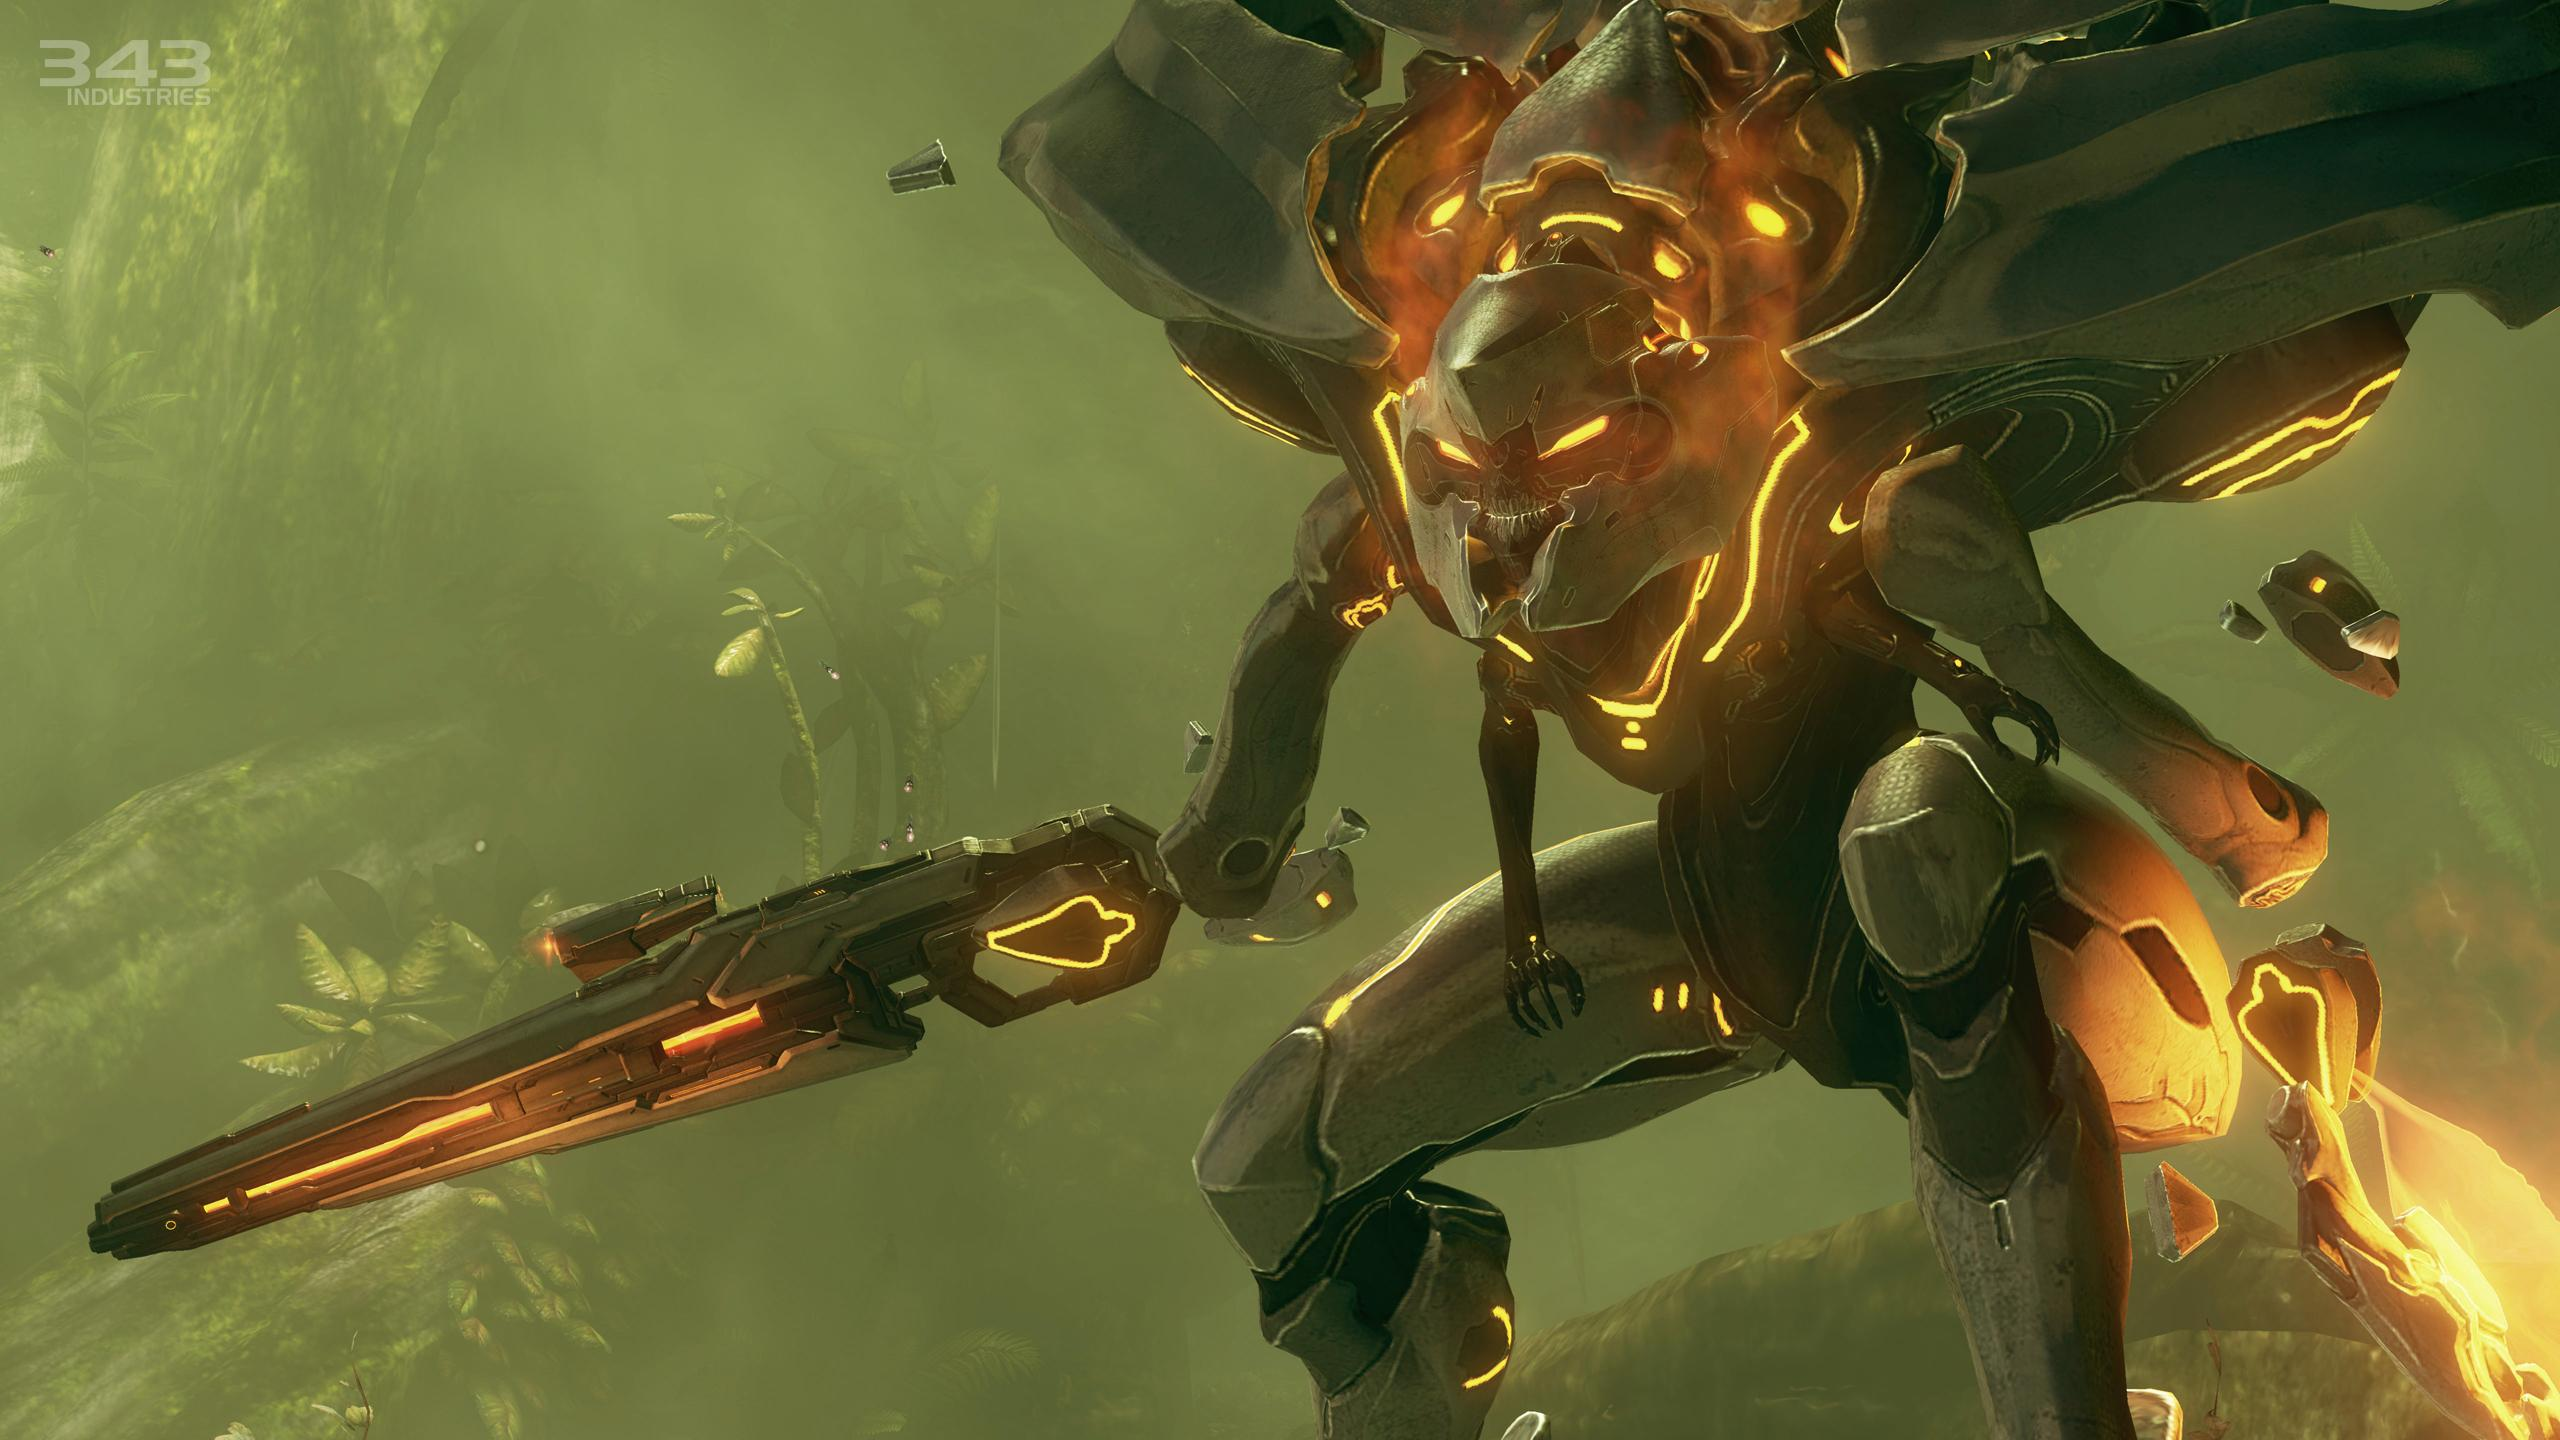 How to get your halo 4 screenshots off your xbox levelsave - Halo 4 pictures ...